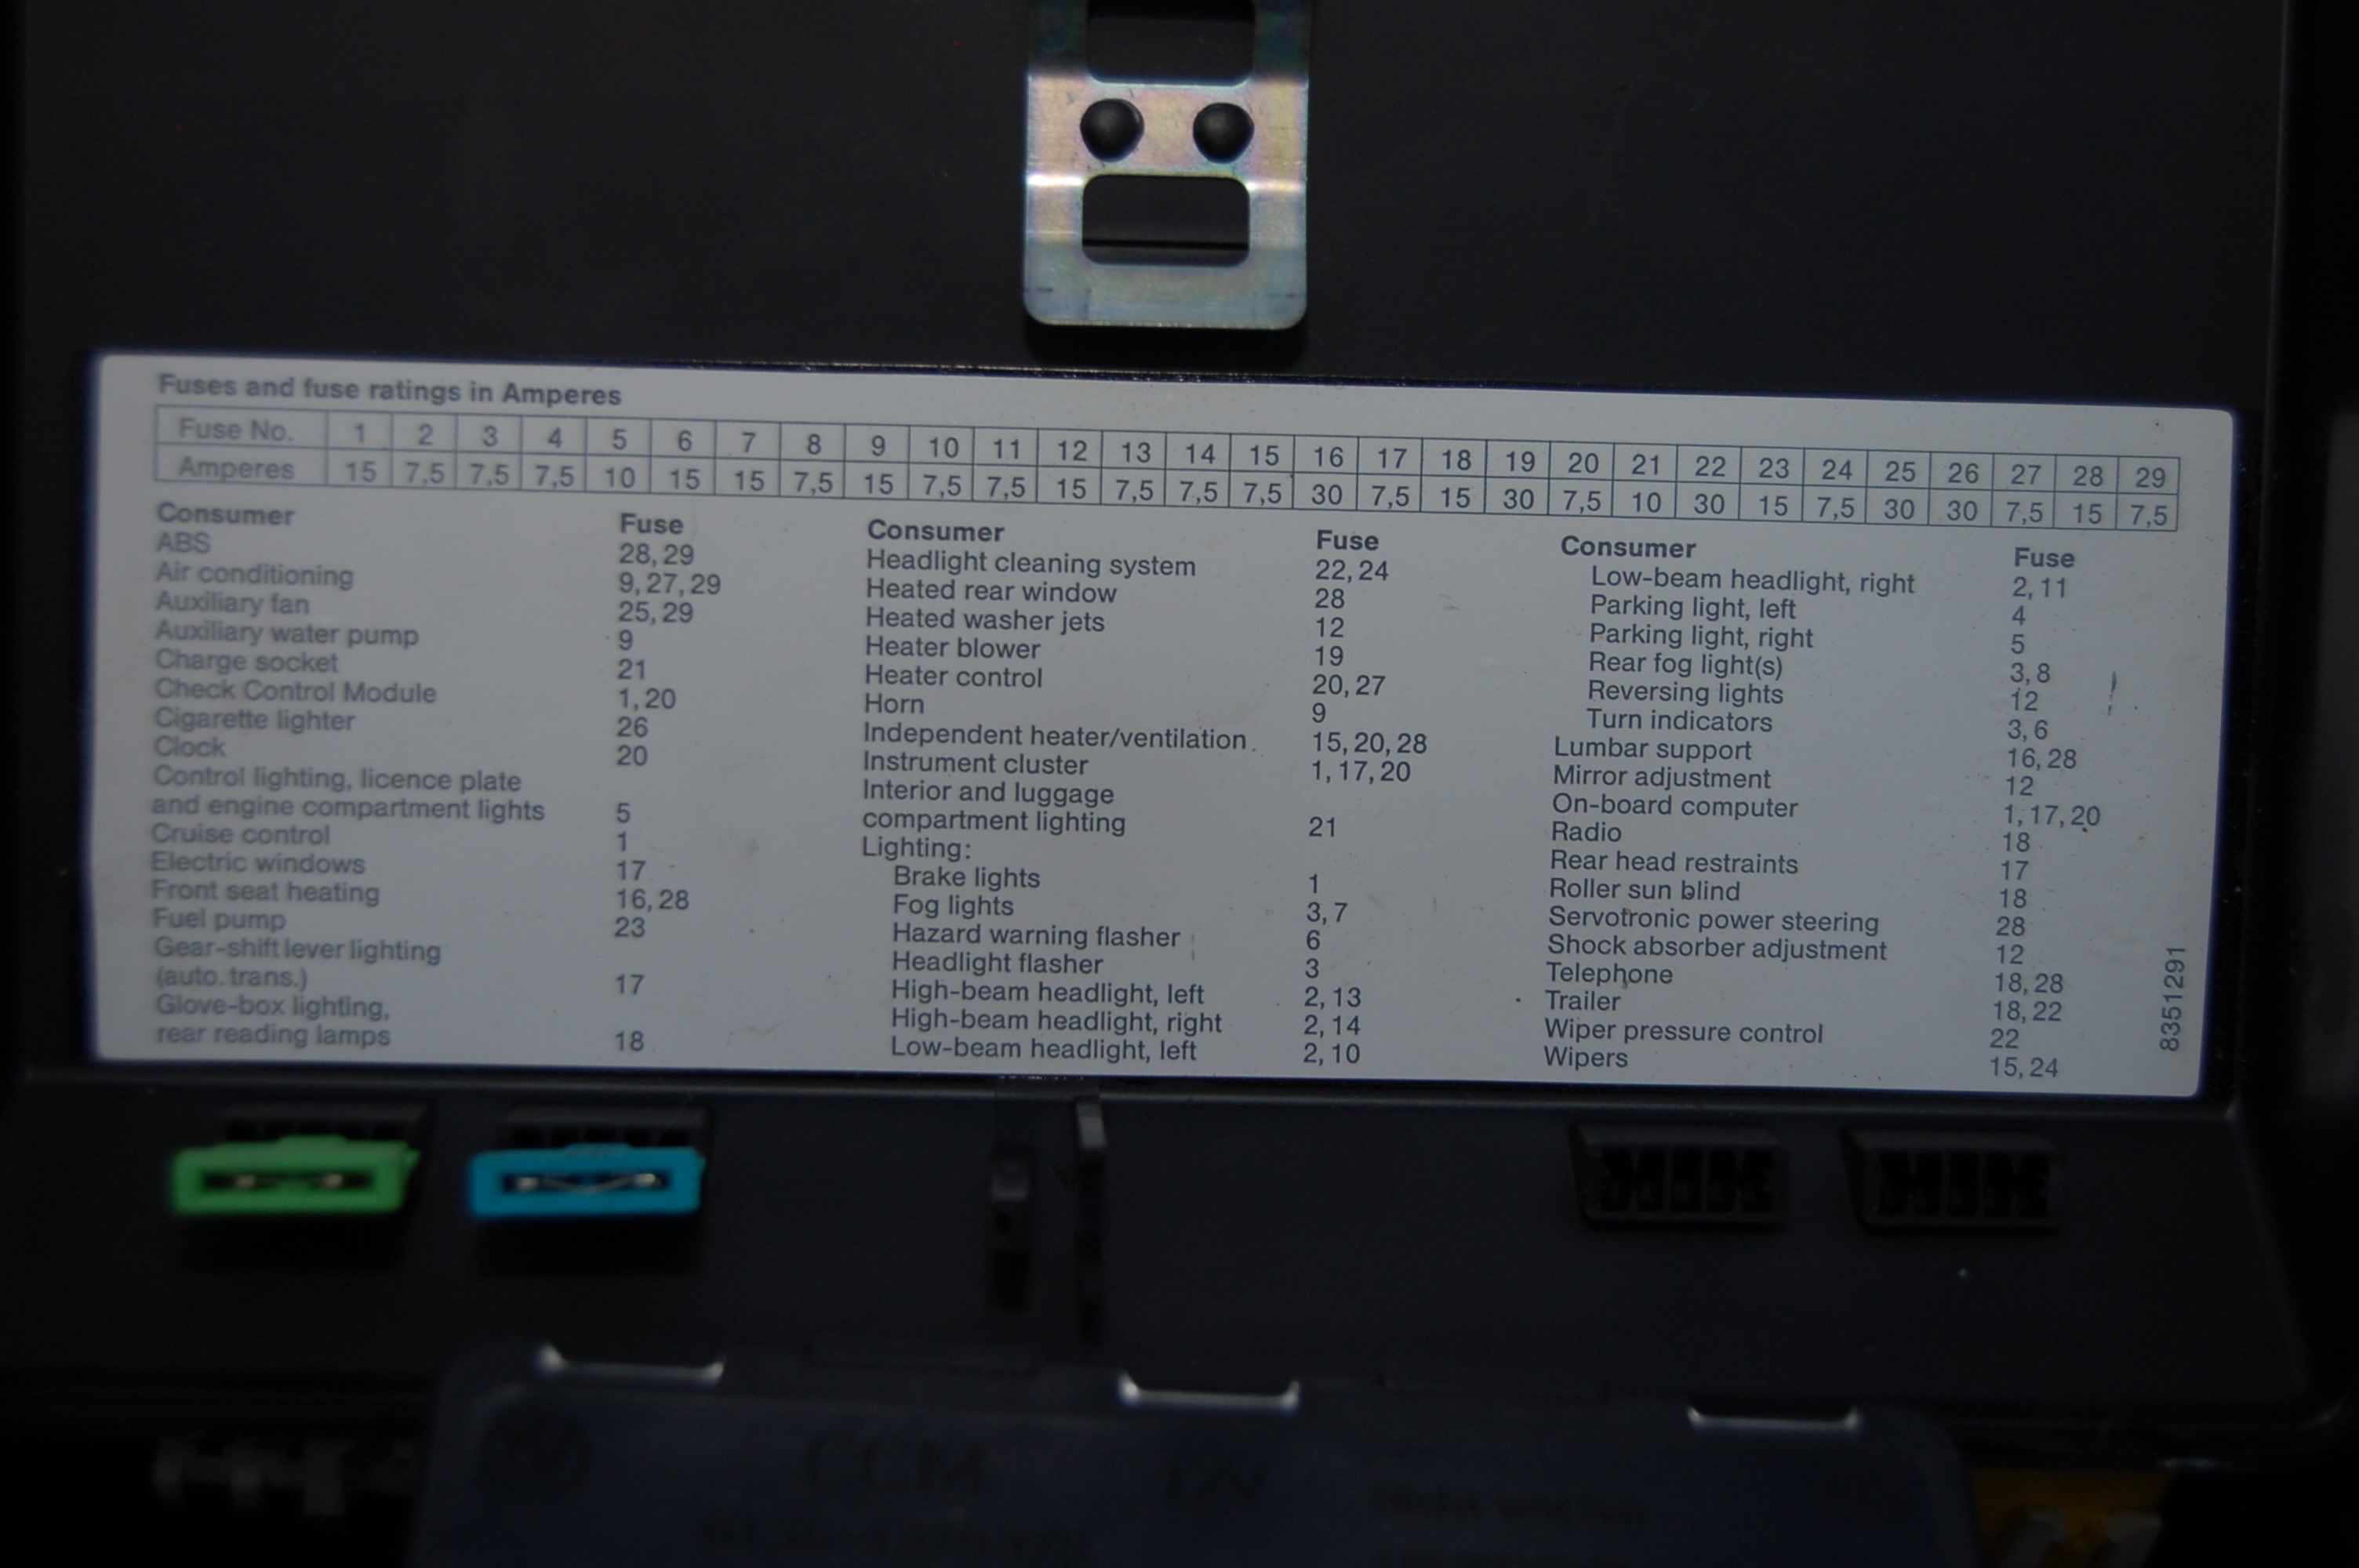 bmw e34 fuse box use wiring diagram e34 fuse box diagram [ 3008 x 2000 Pixel ]